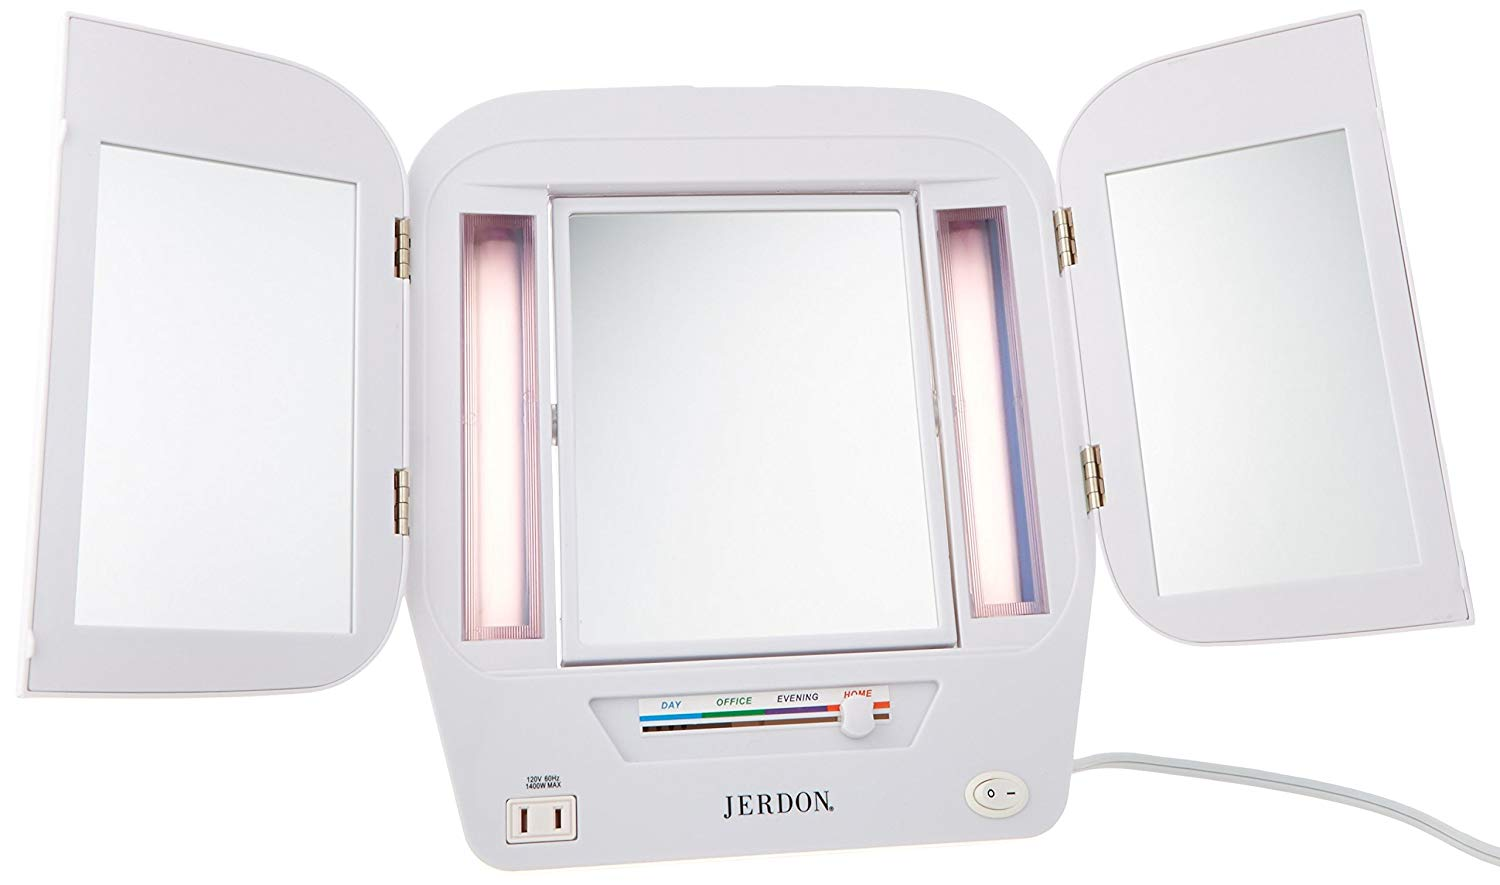 Jerdon Light up makeup mirror on Amazon is budget friendly and has over 2,000 reviews!